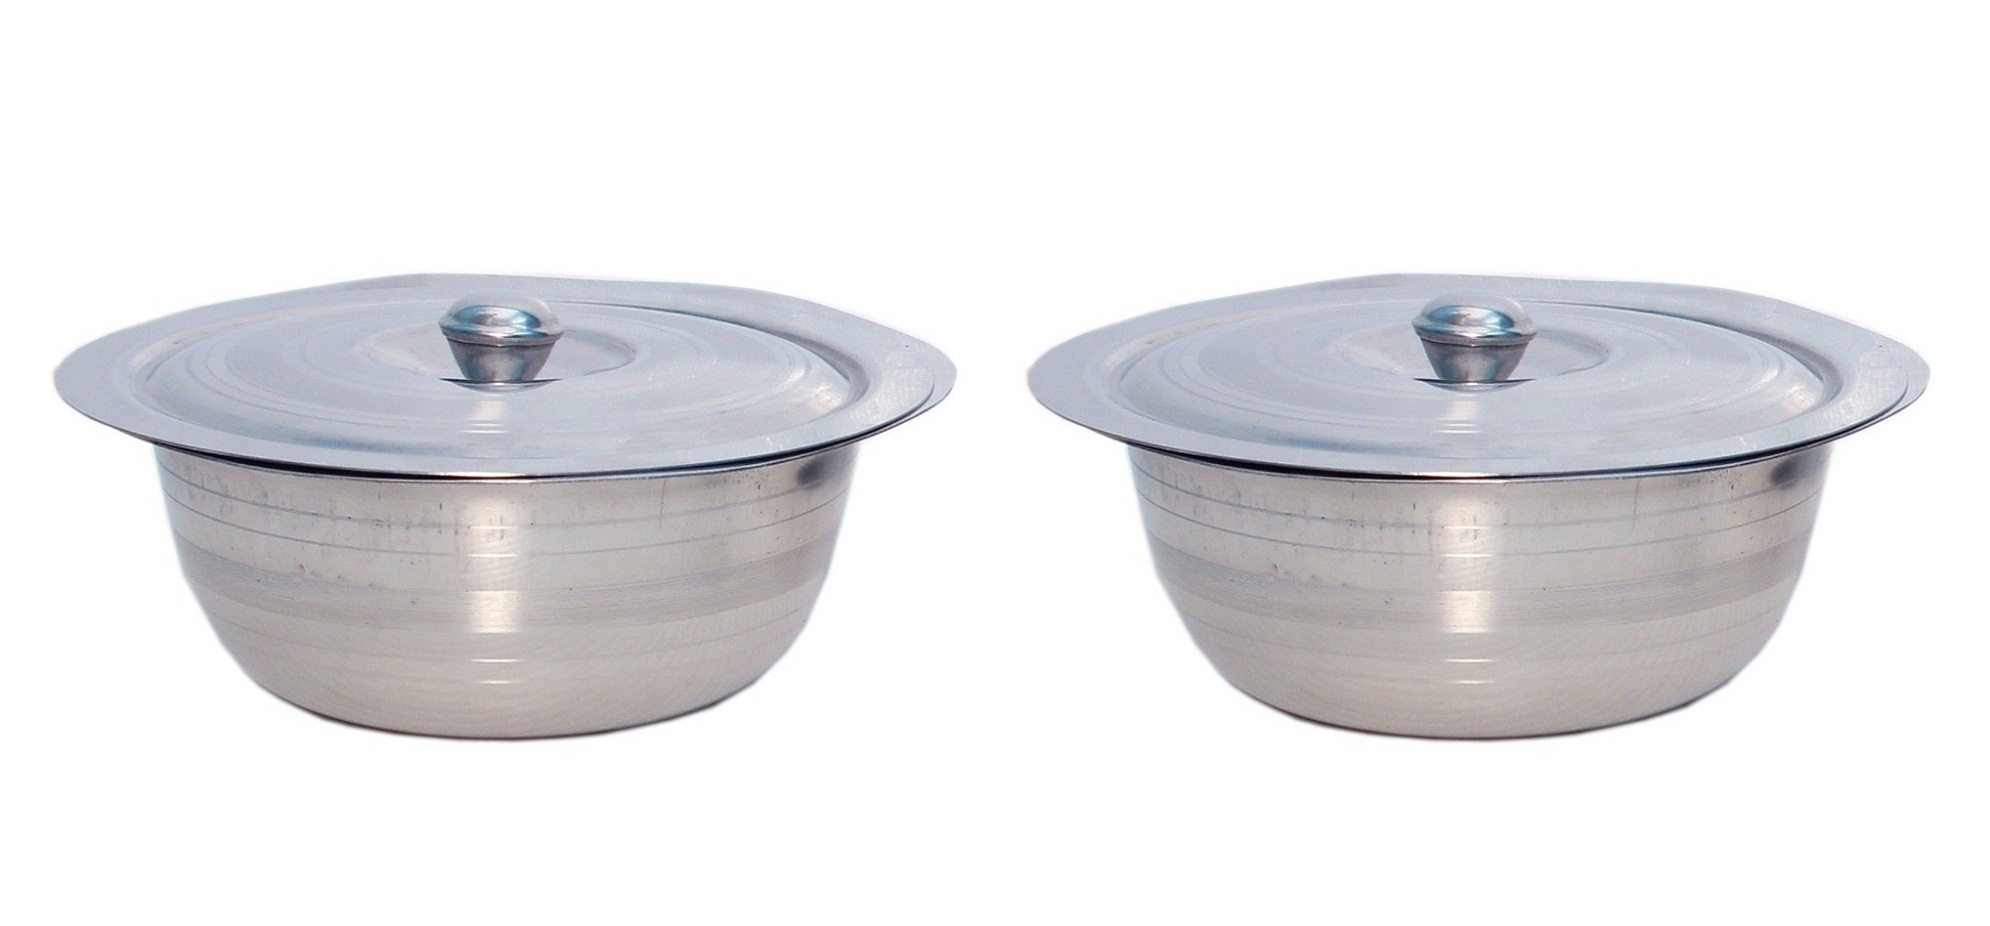 AH Stainless Steel Set of 2 Pcs Serving Bowls With Lid   Dongas   For Serving Dishes   Steel Color